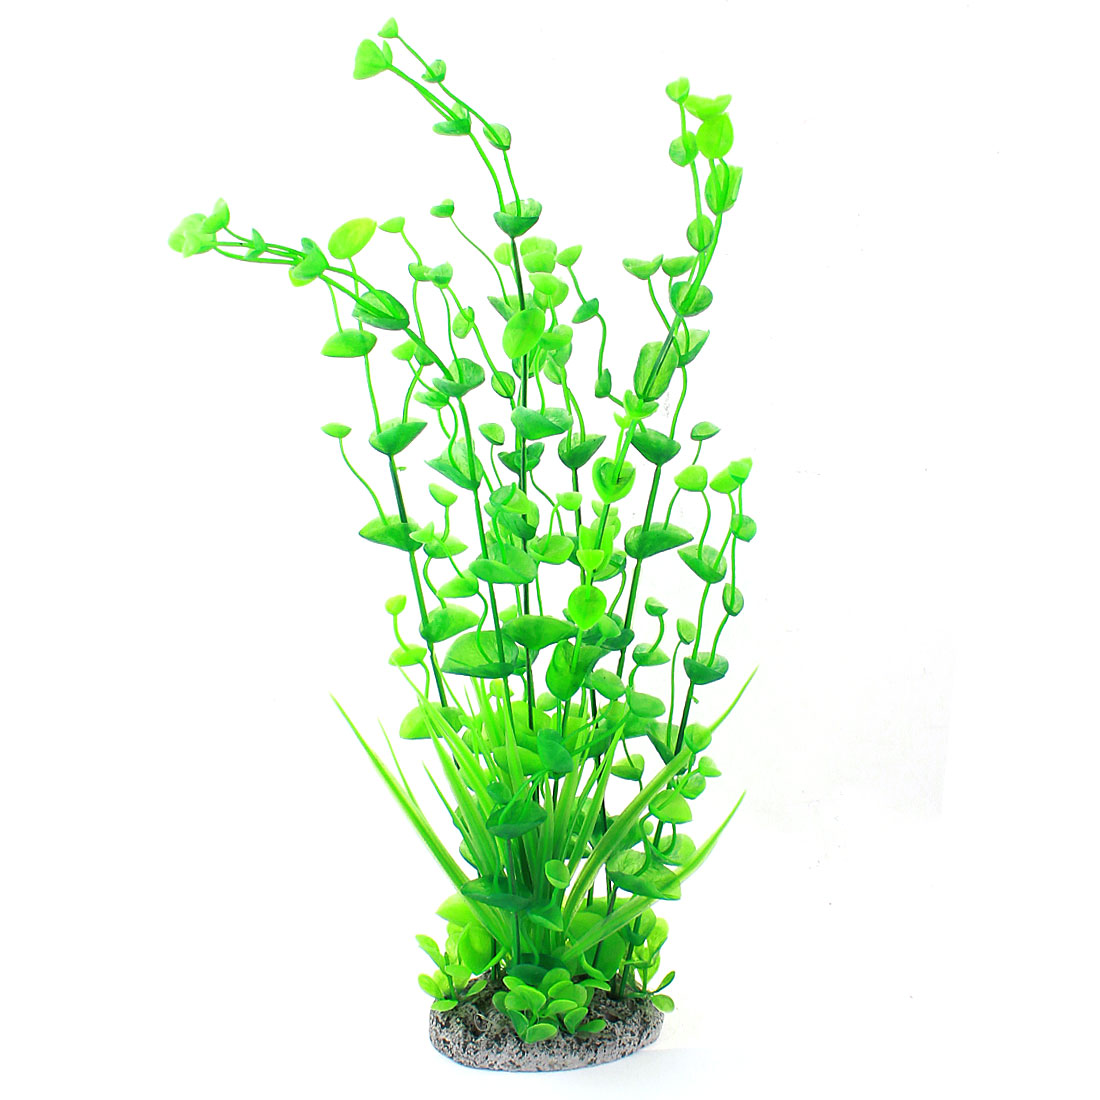 "Aquarium Plastic Simulation Water Grass Aquatic Plant Decor Green 16.3"" High"